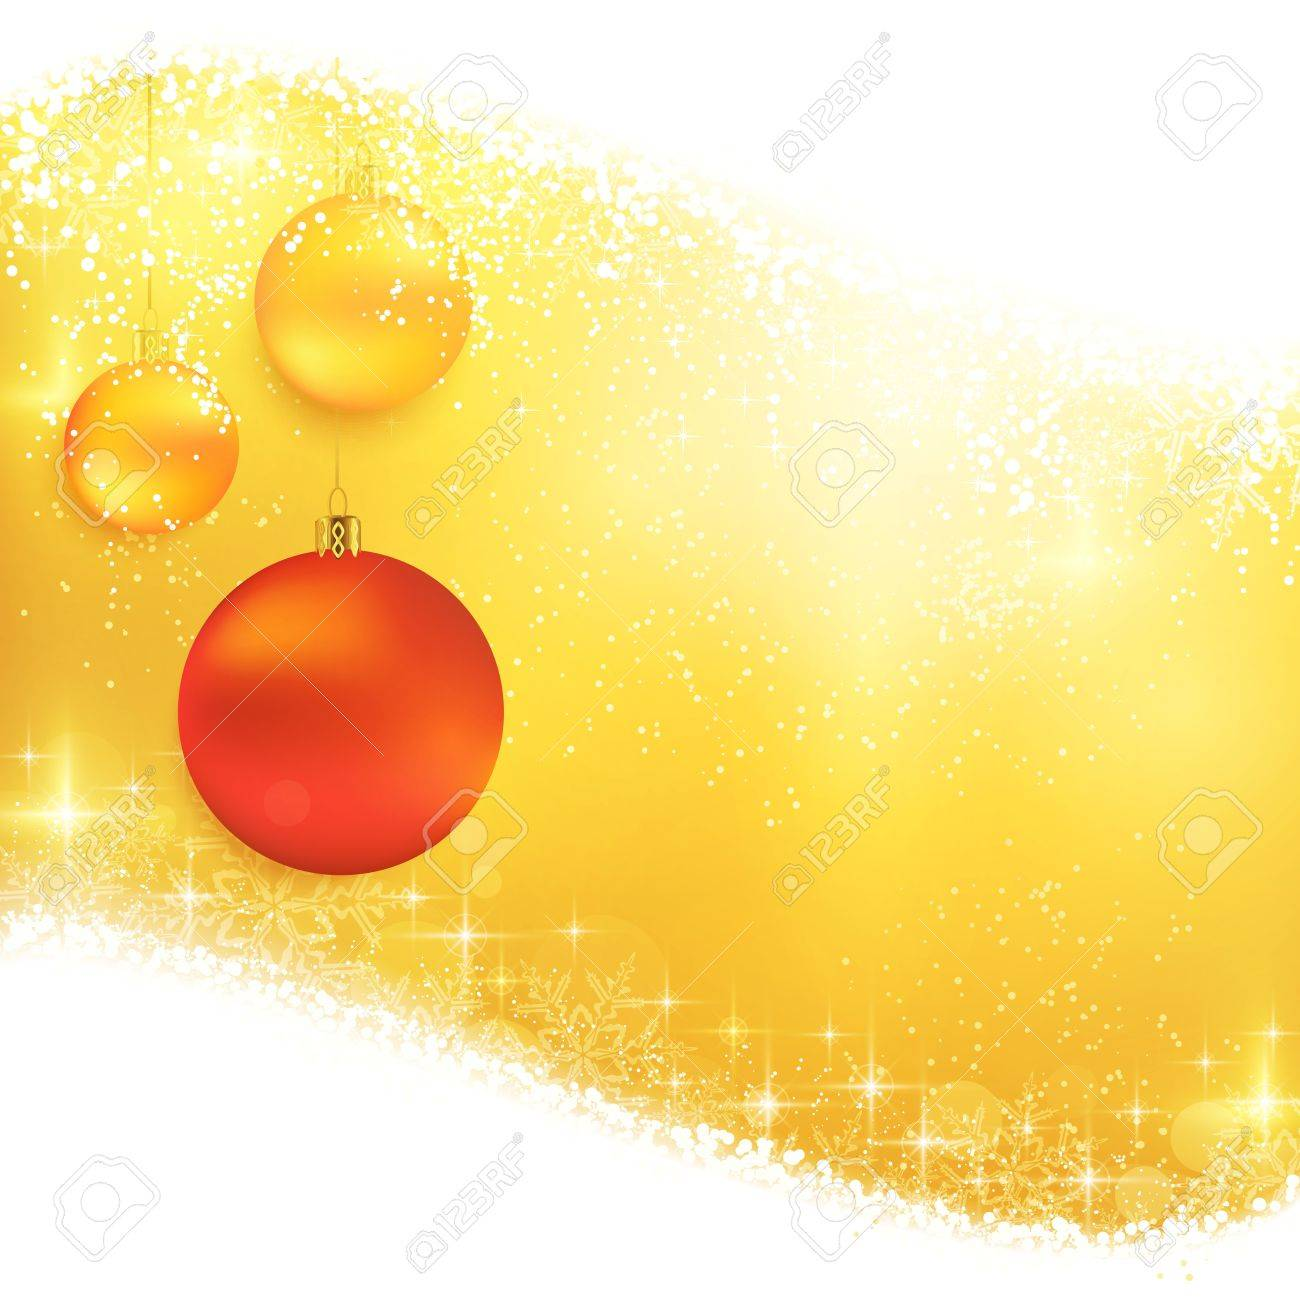 Hanging Christmas ornaments on a shiny golden background with light effects, magical stars and glittering snowflakes. Great for the festive season of Christmas Stock Vector - 16519312